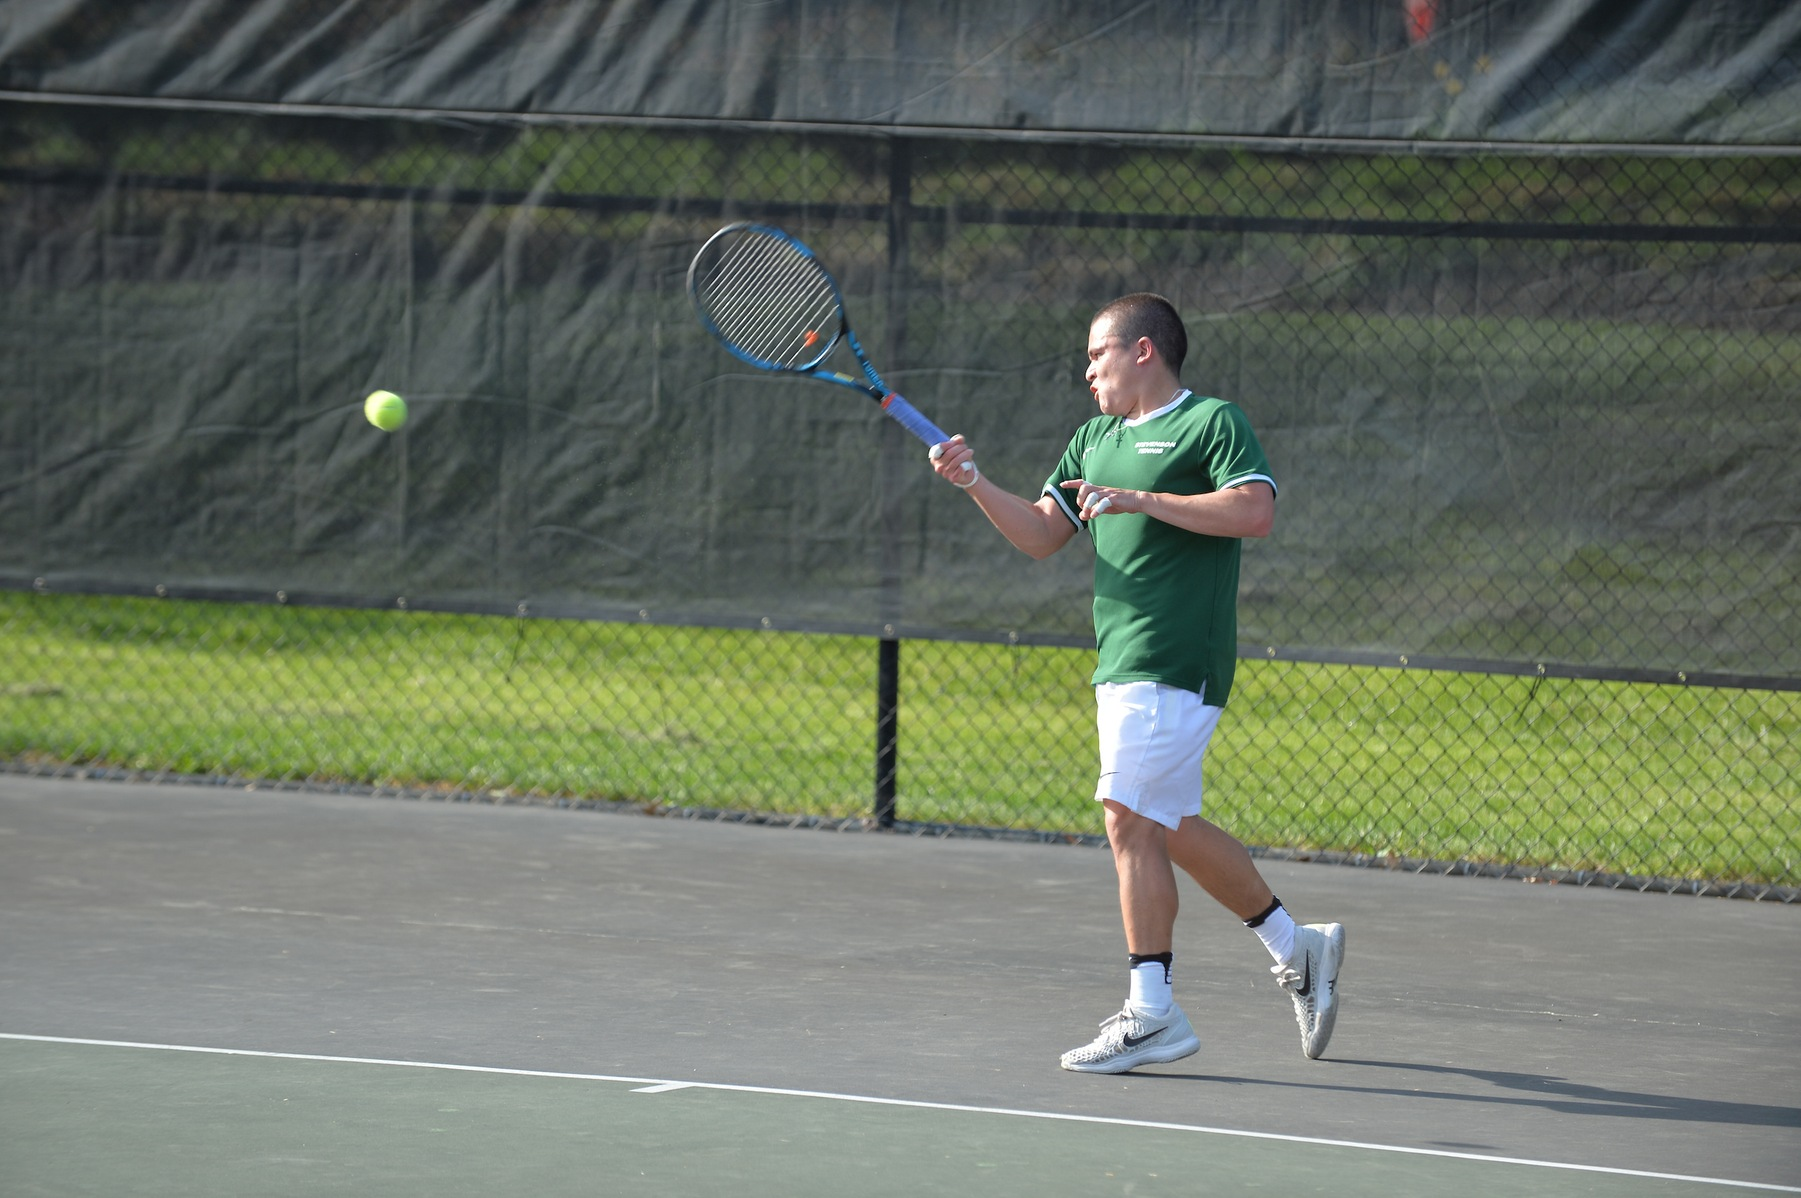 Men's Tennis Remains Undefeated in 8-1 Rout of SUNY Oswego